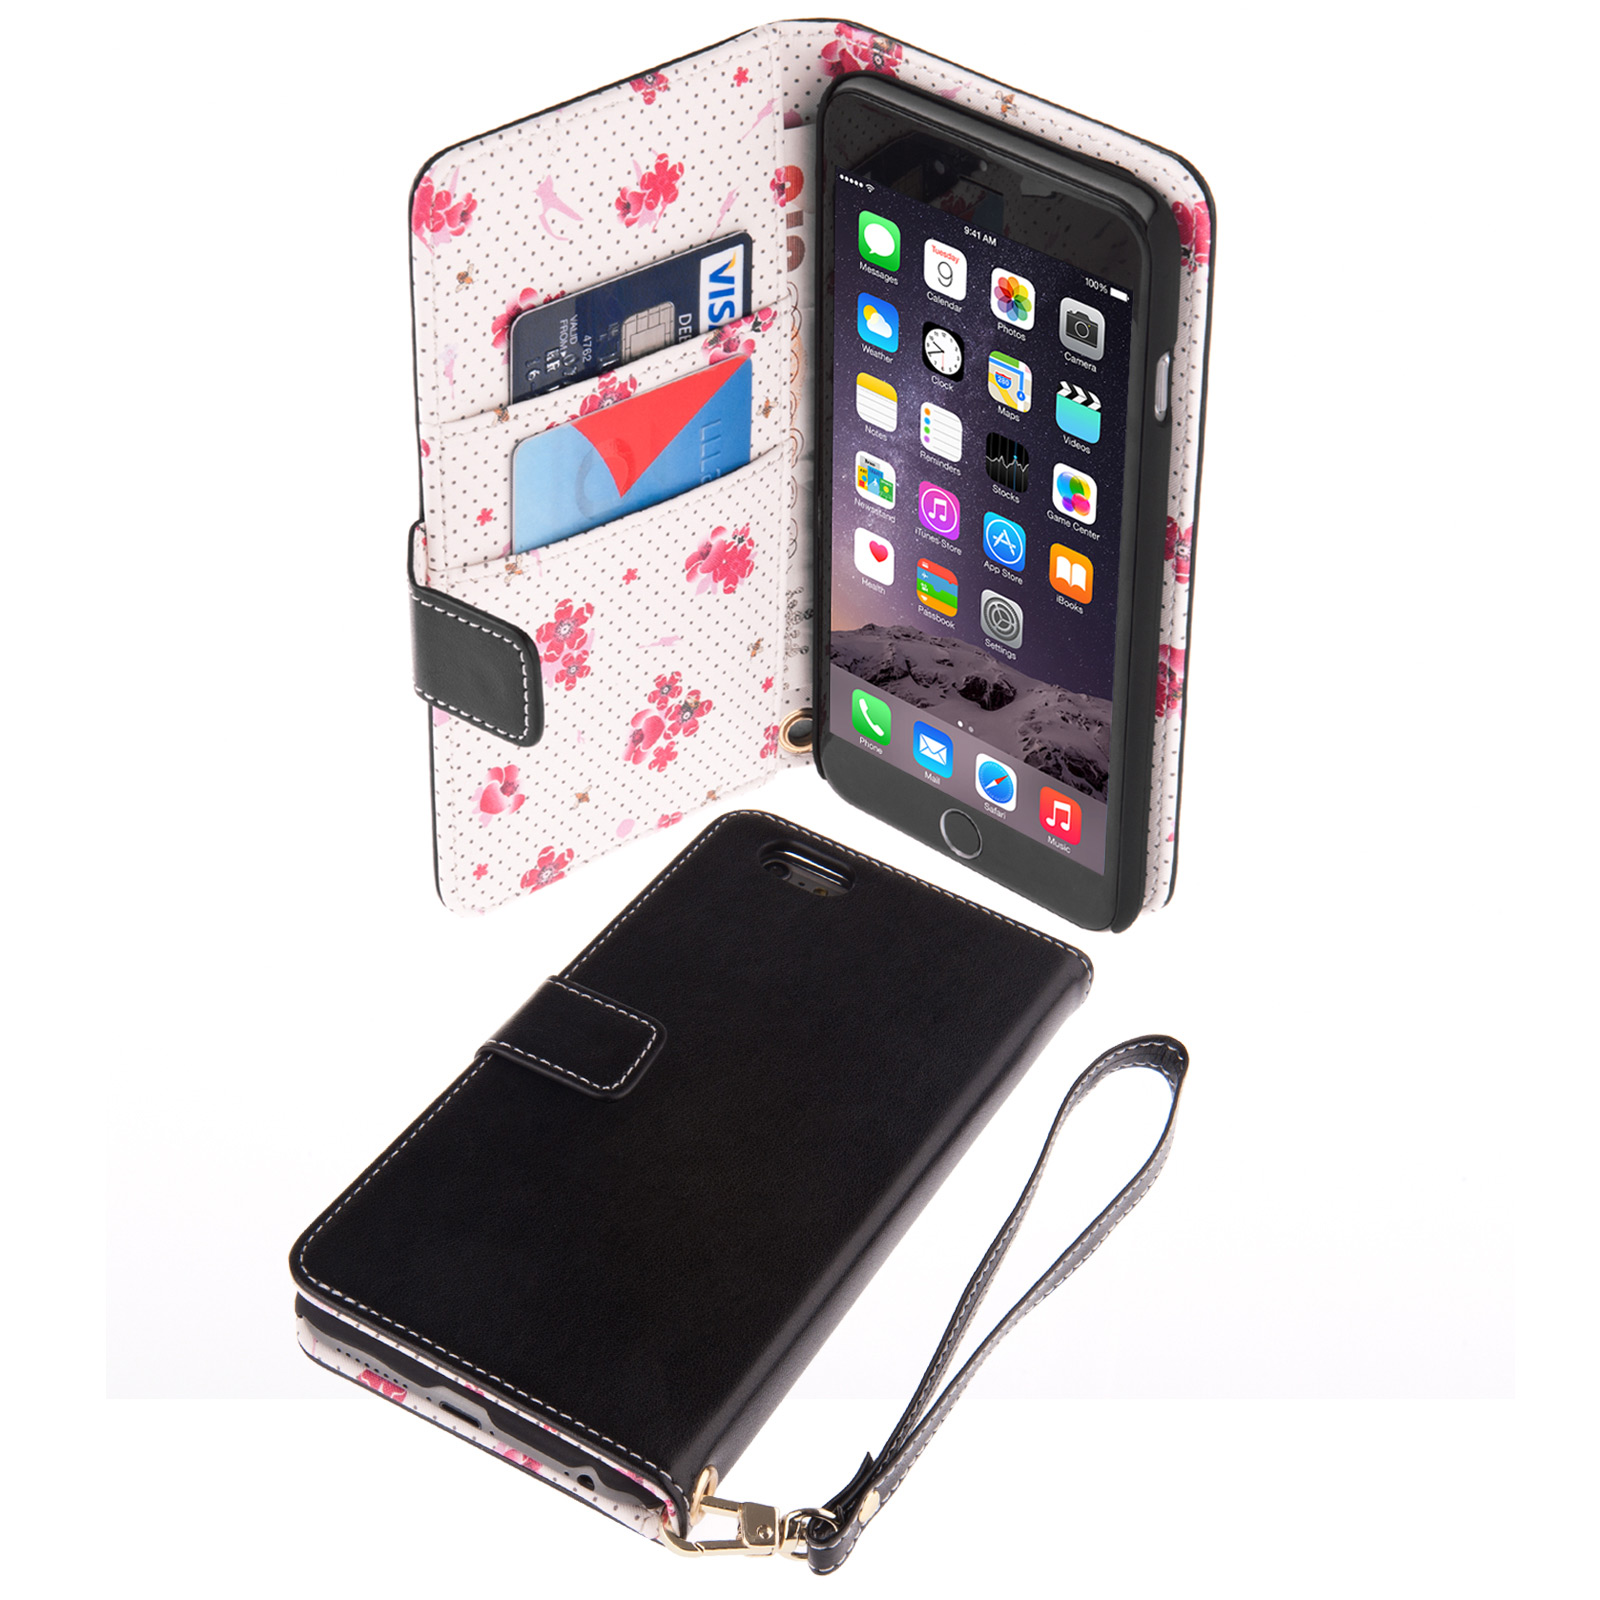 Caseflex iPhone 6 Plus and 6s Plus Leather-Effect Wallet Case – Black with Floral Lining